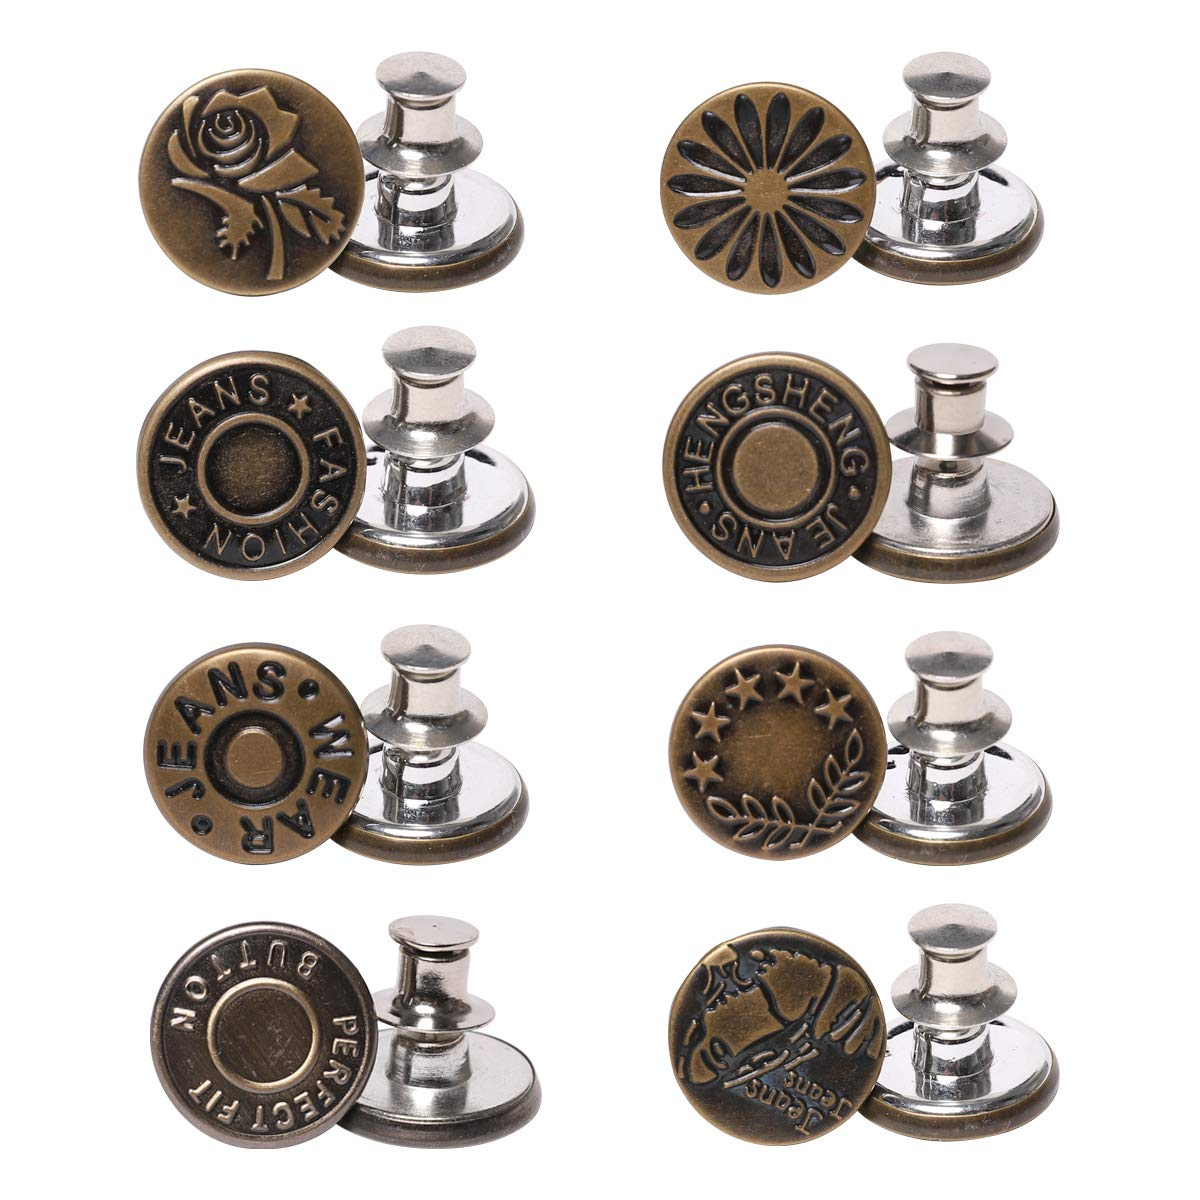 CHIFONG 17mm Detachable Jeans Button Pins. No-Sew Pants Button, Jeans Metal Instant Buttons, Replacement Denim Jackets Buttons. Adjustable Waist Buckle, Sewing Crafts Fashion DIY 801